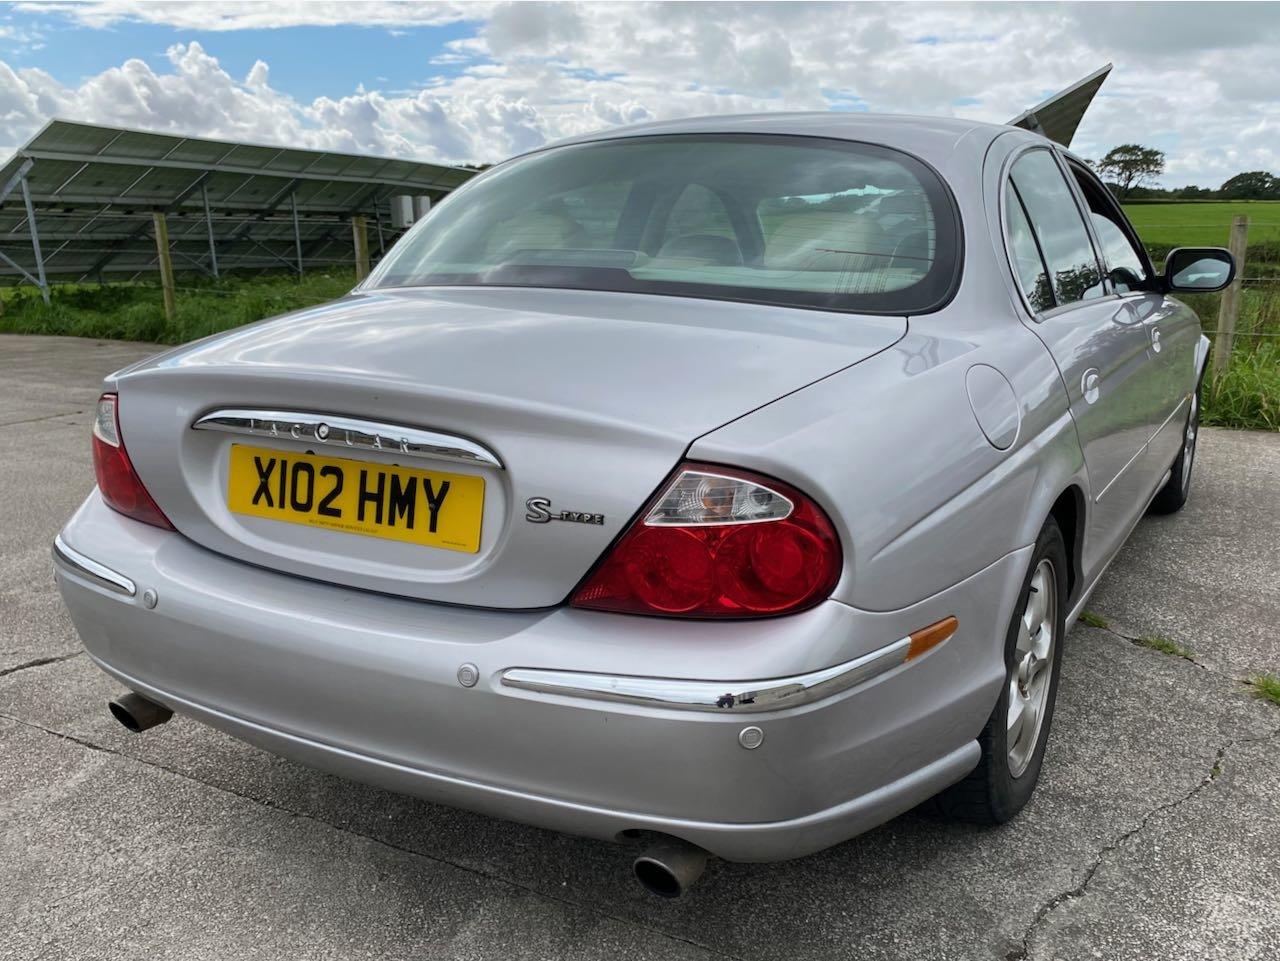 2000 Immaculate, low milage, 3 litre S-Type SOLD (picture 3 of 6)